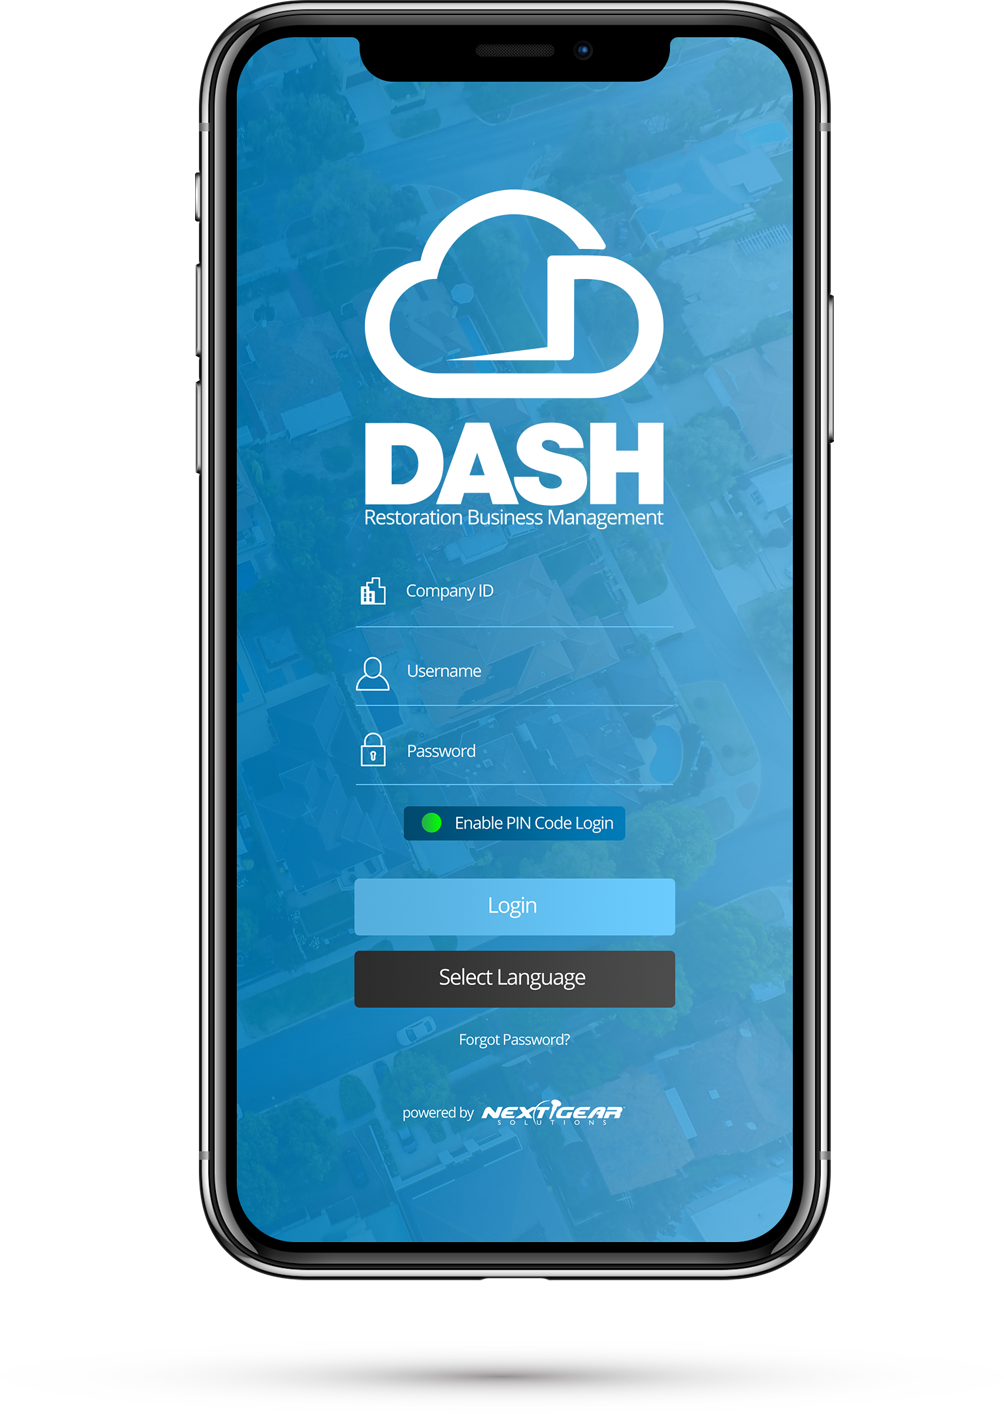 dash-next-gear-mobile